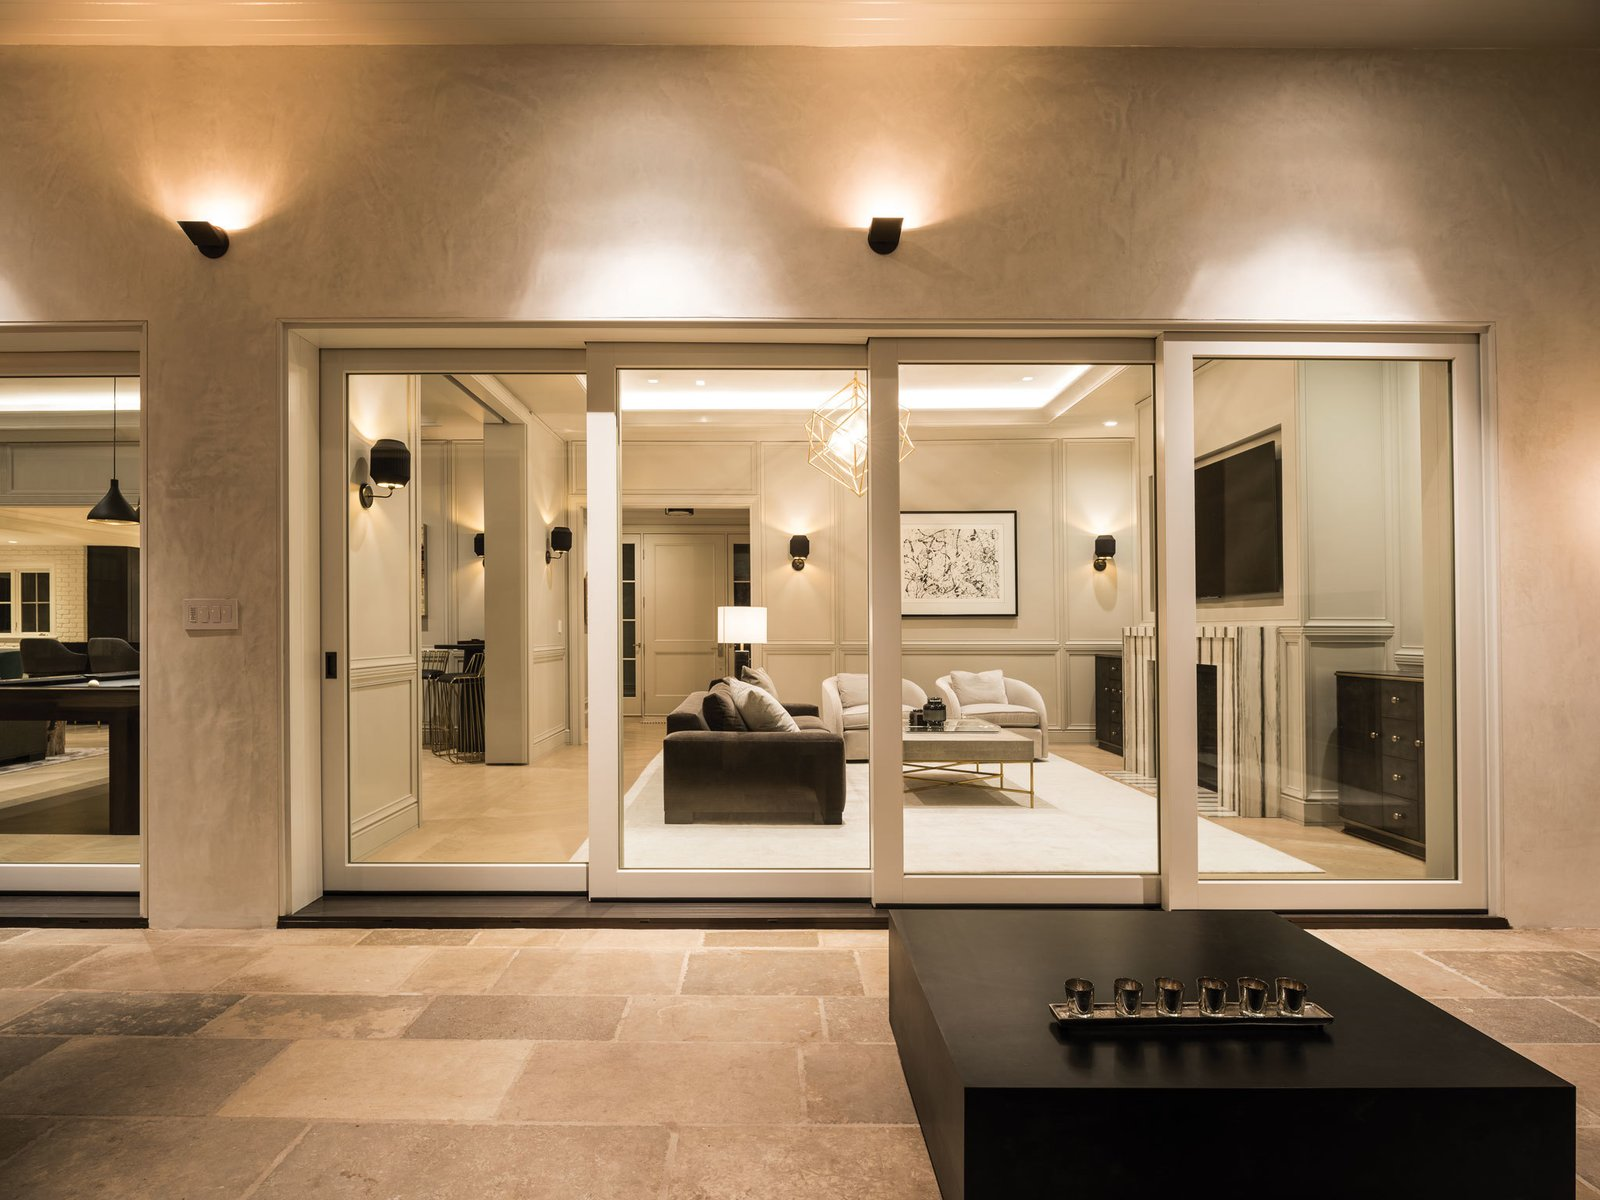 Photo 2 of 4 in A Los Angeles Renovation Opens Up to Coastal Climes